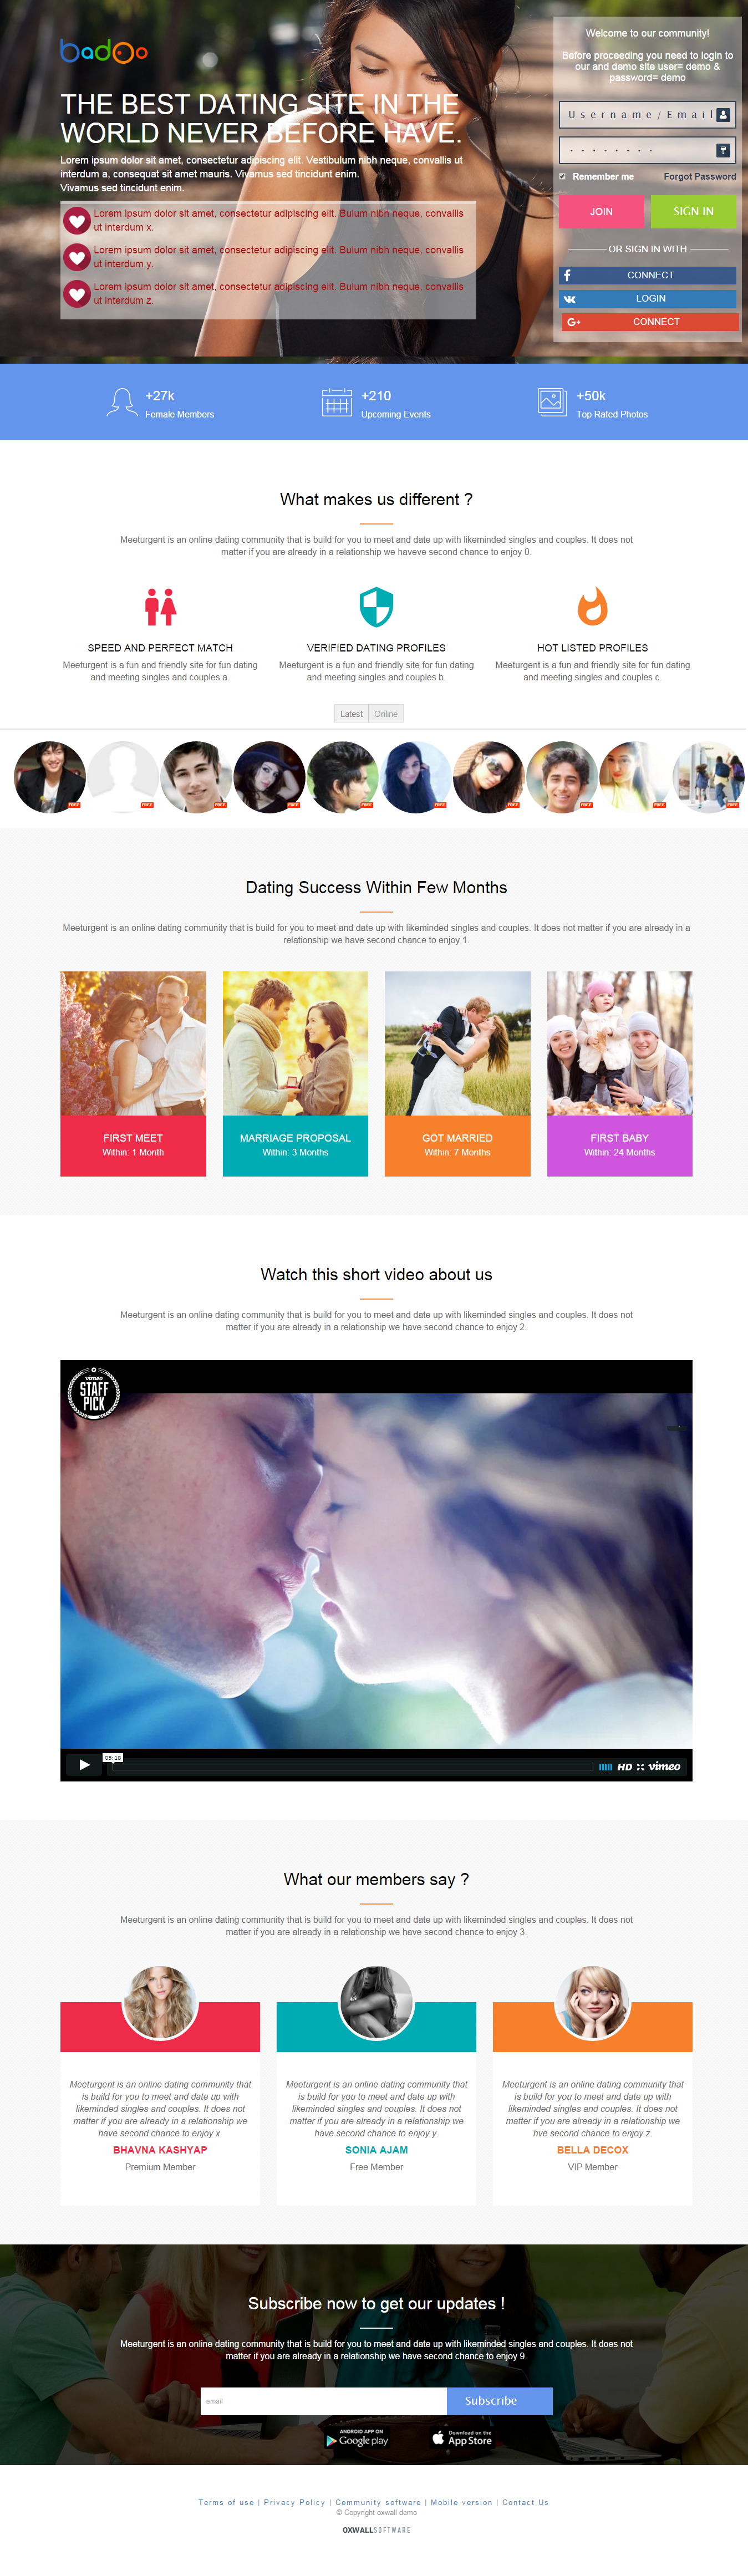 Oxwall dating site